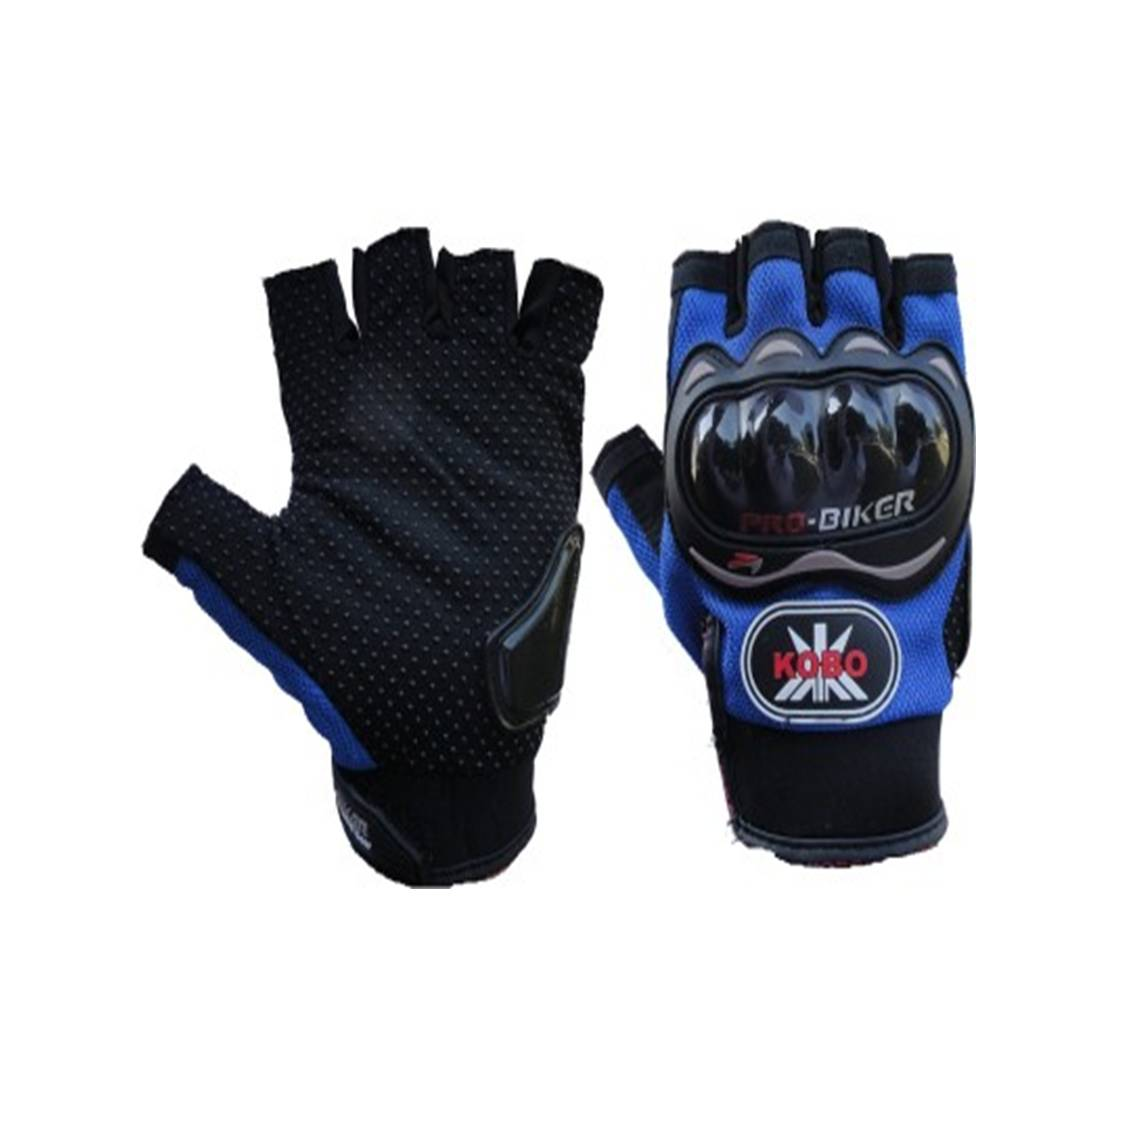 3810 cycling glove blue